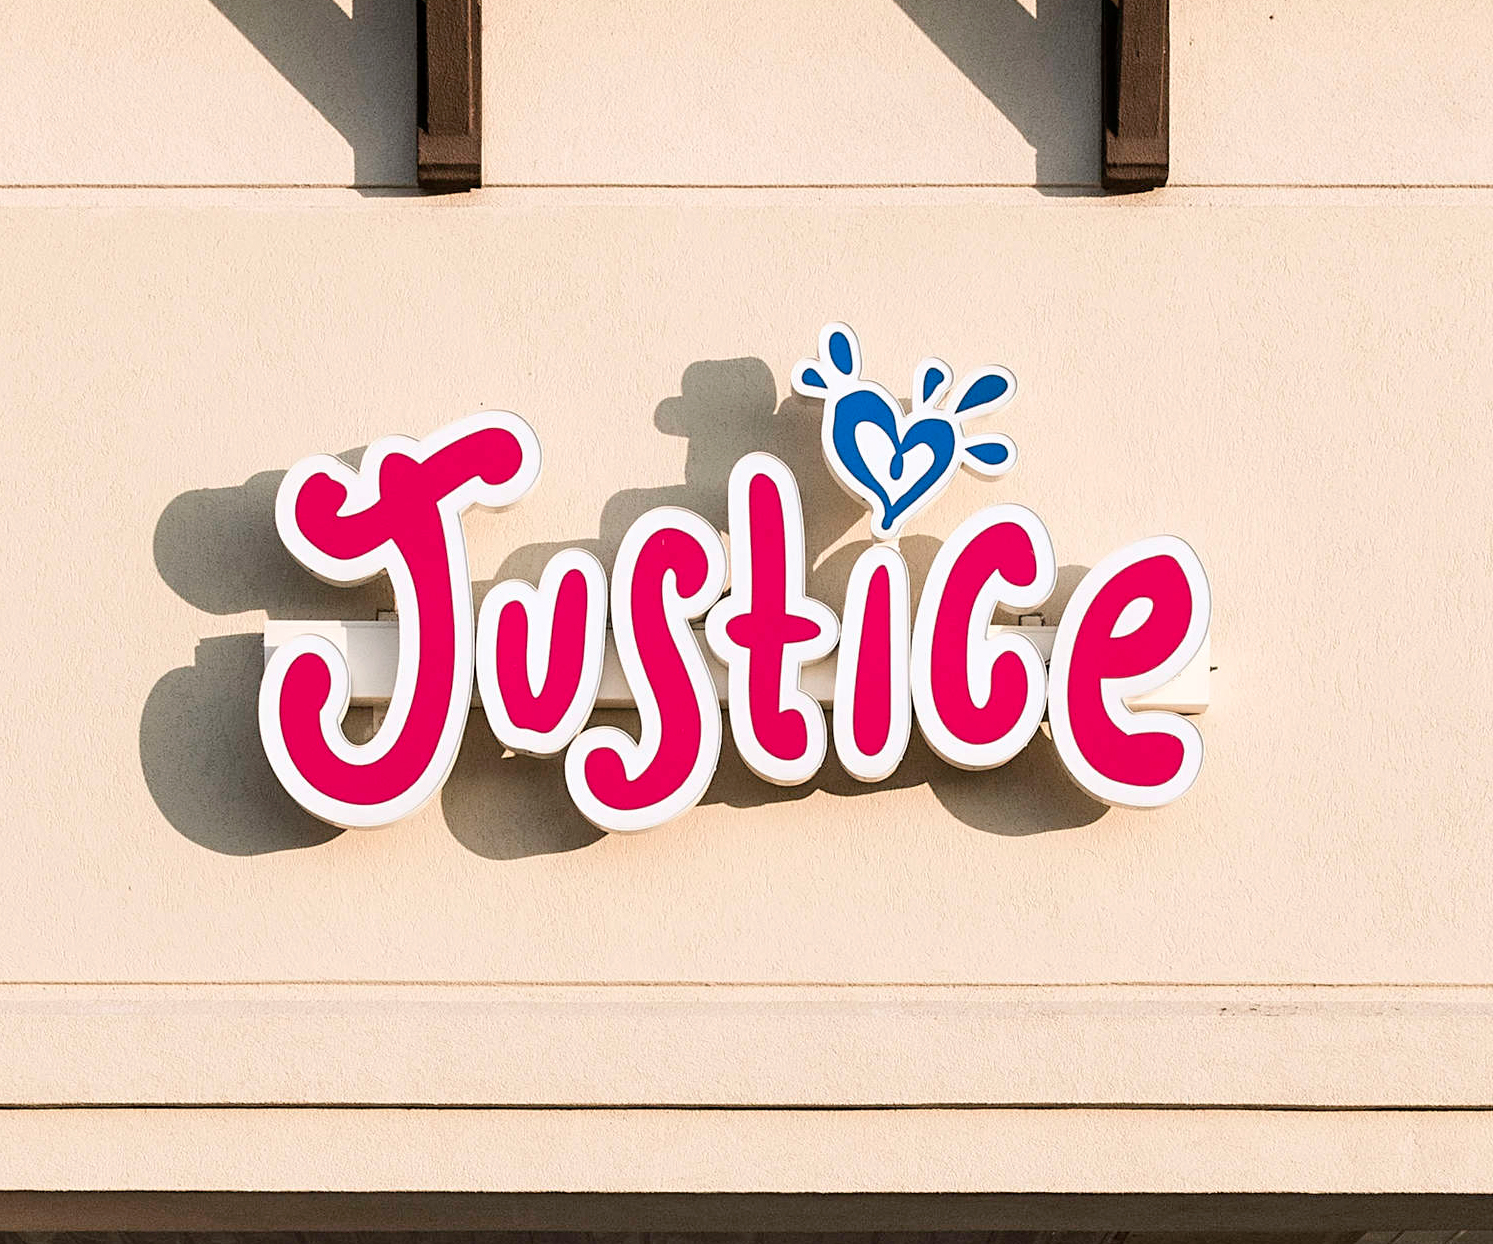 Asbestos Has Been Discovered in This Makeup Product at Tween Retailer Justice